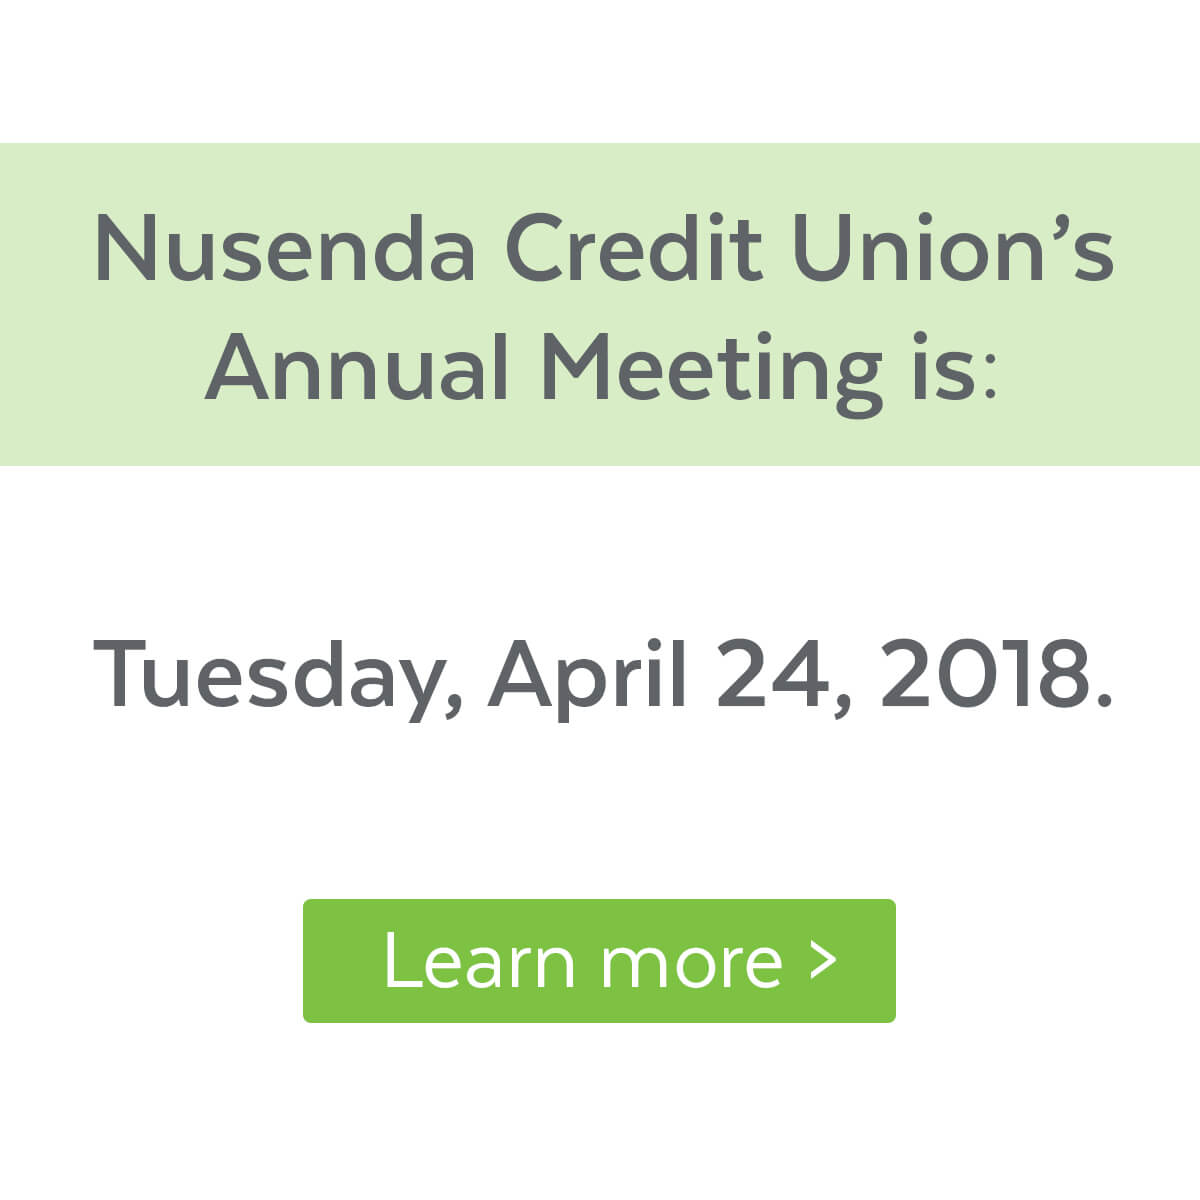 Certificate of deposit ira cds nusenda credit union nusenda credit unions annual meeting will be held on april 24 2018 click to 1betcityfo Images